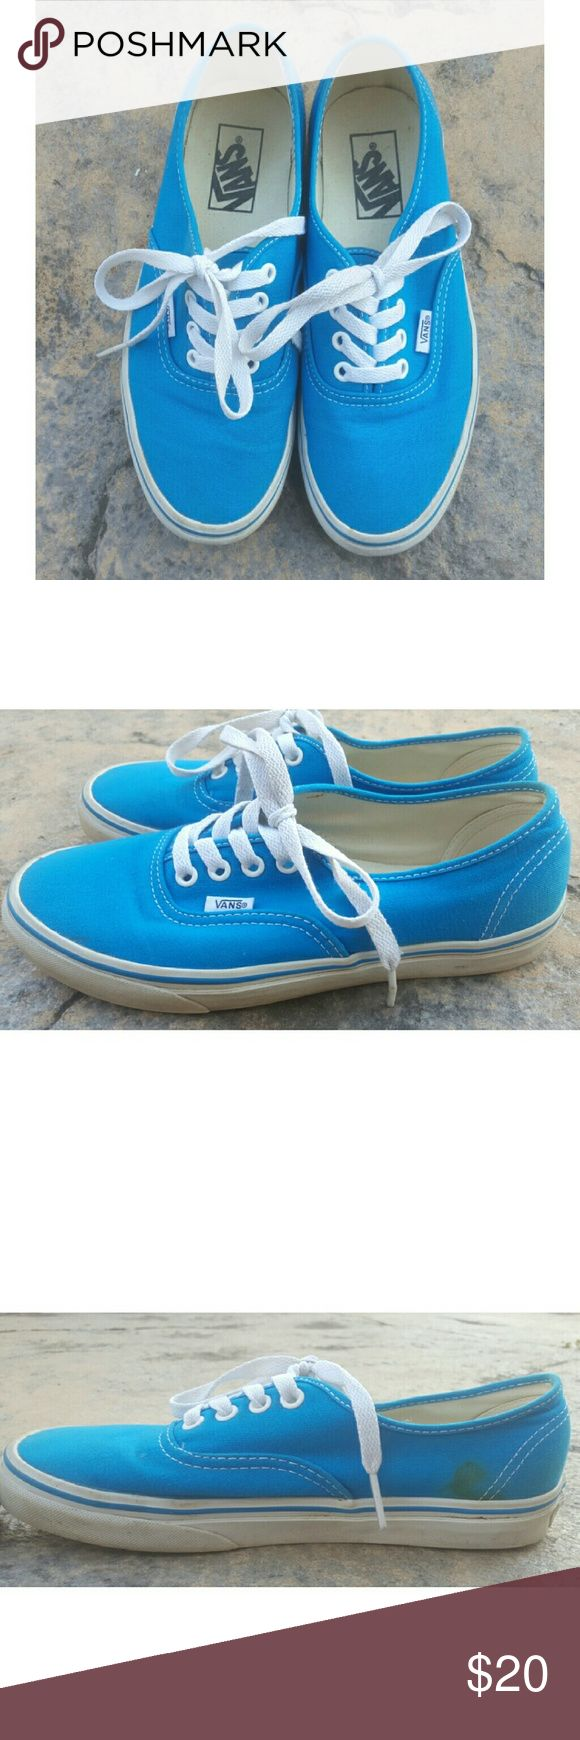 Rare Blue Vans Unique bright blue Vans. Wore them a handful of times but aquired a small stain on the inside of the right shoe one of the times I wore them.  Women's size 7 Mens size 5.5 Vans Shoes